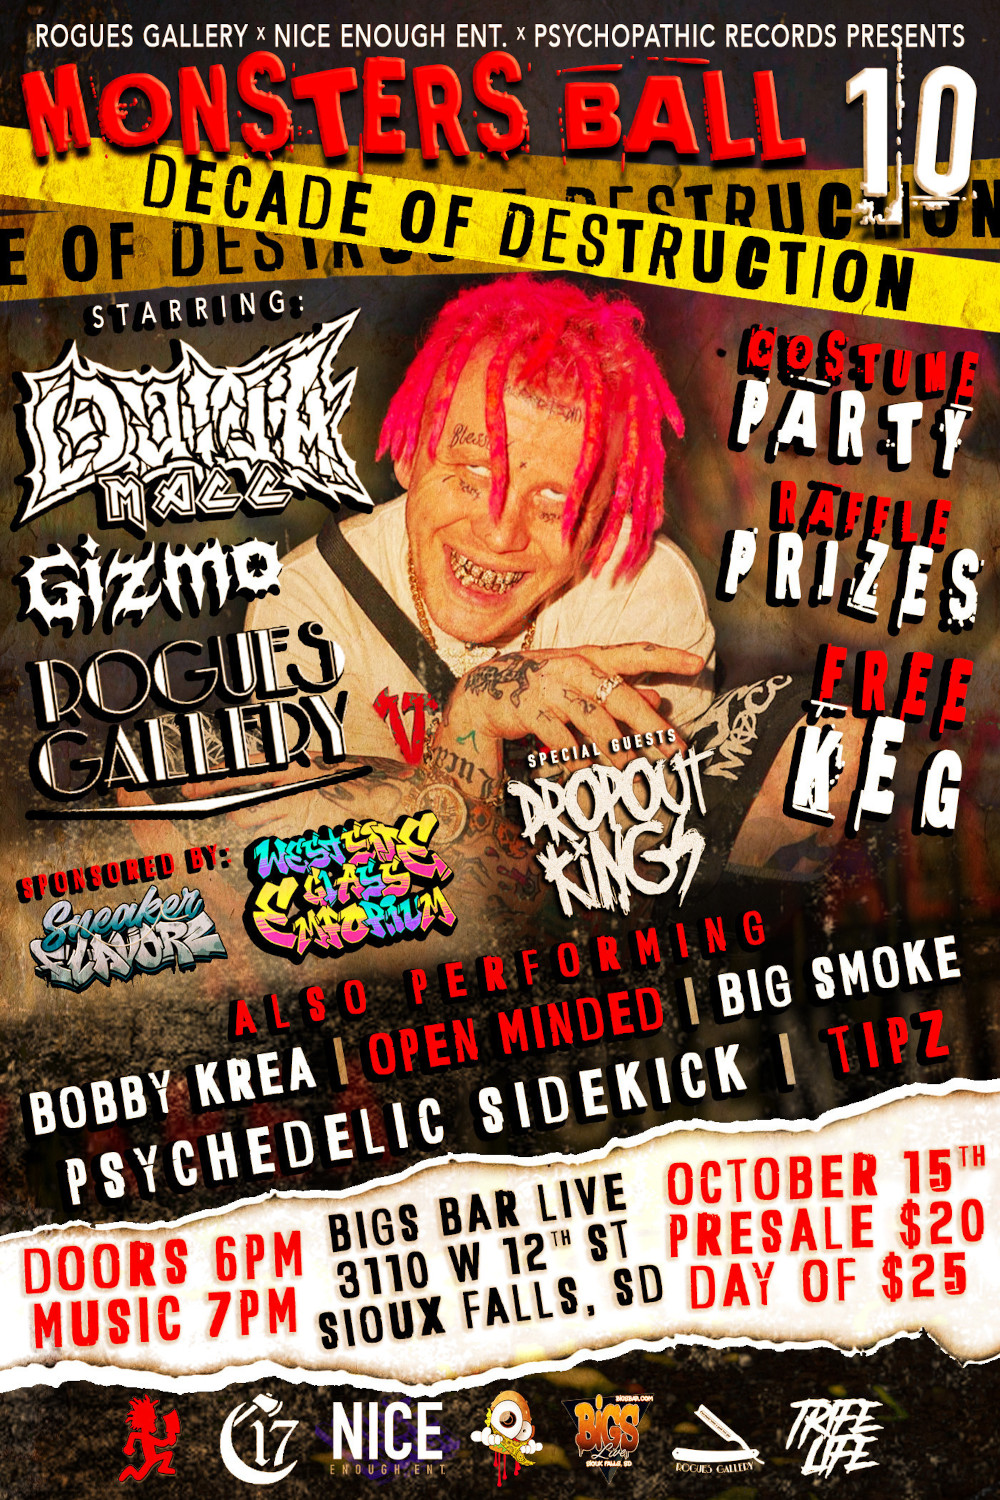 Monster's Ball 10 (ft. Ouija Macc, Dropout Kings, More) - Sioux Falls, SD